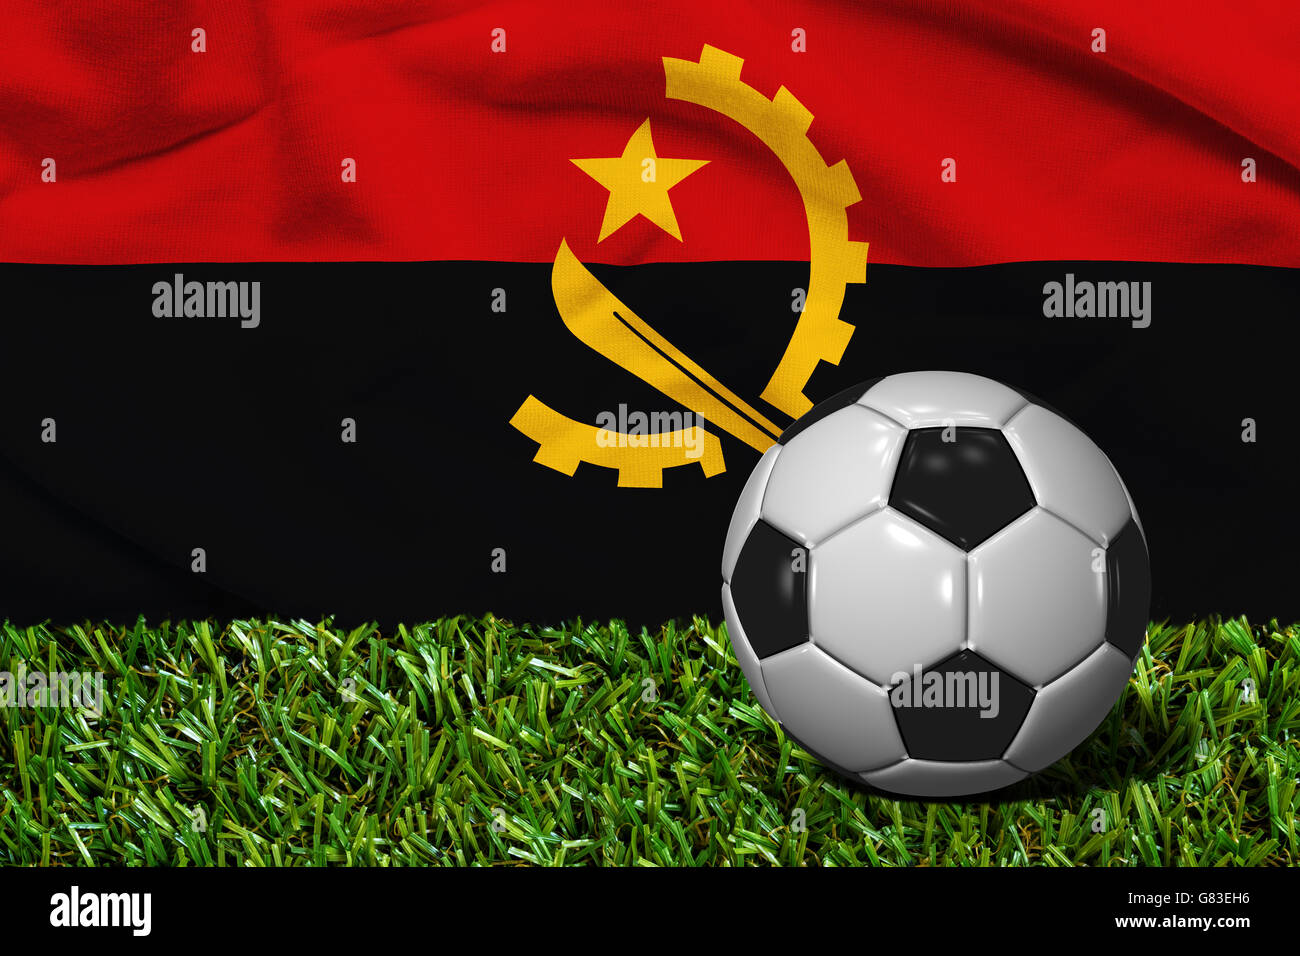 3D rendered soccer ball in grass field with Republic of Angola flag as Background - Stock Image